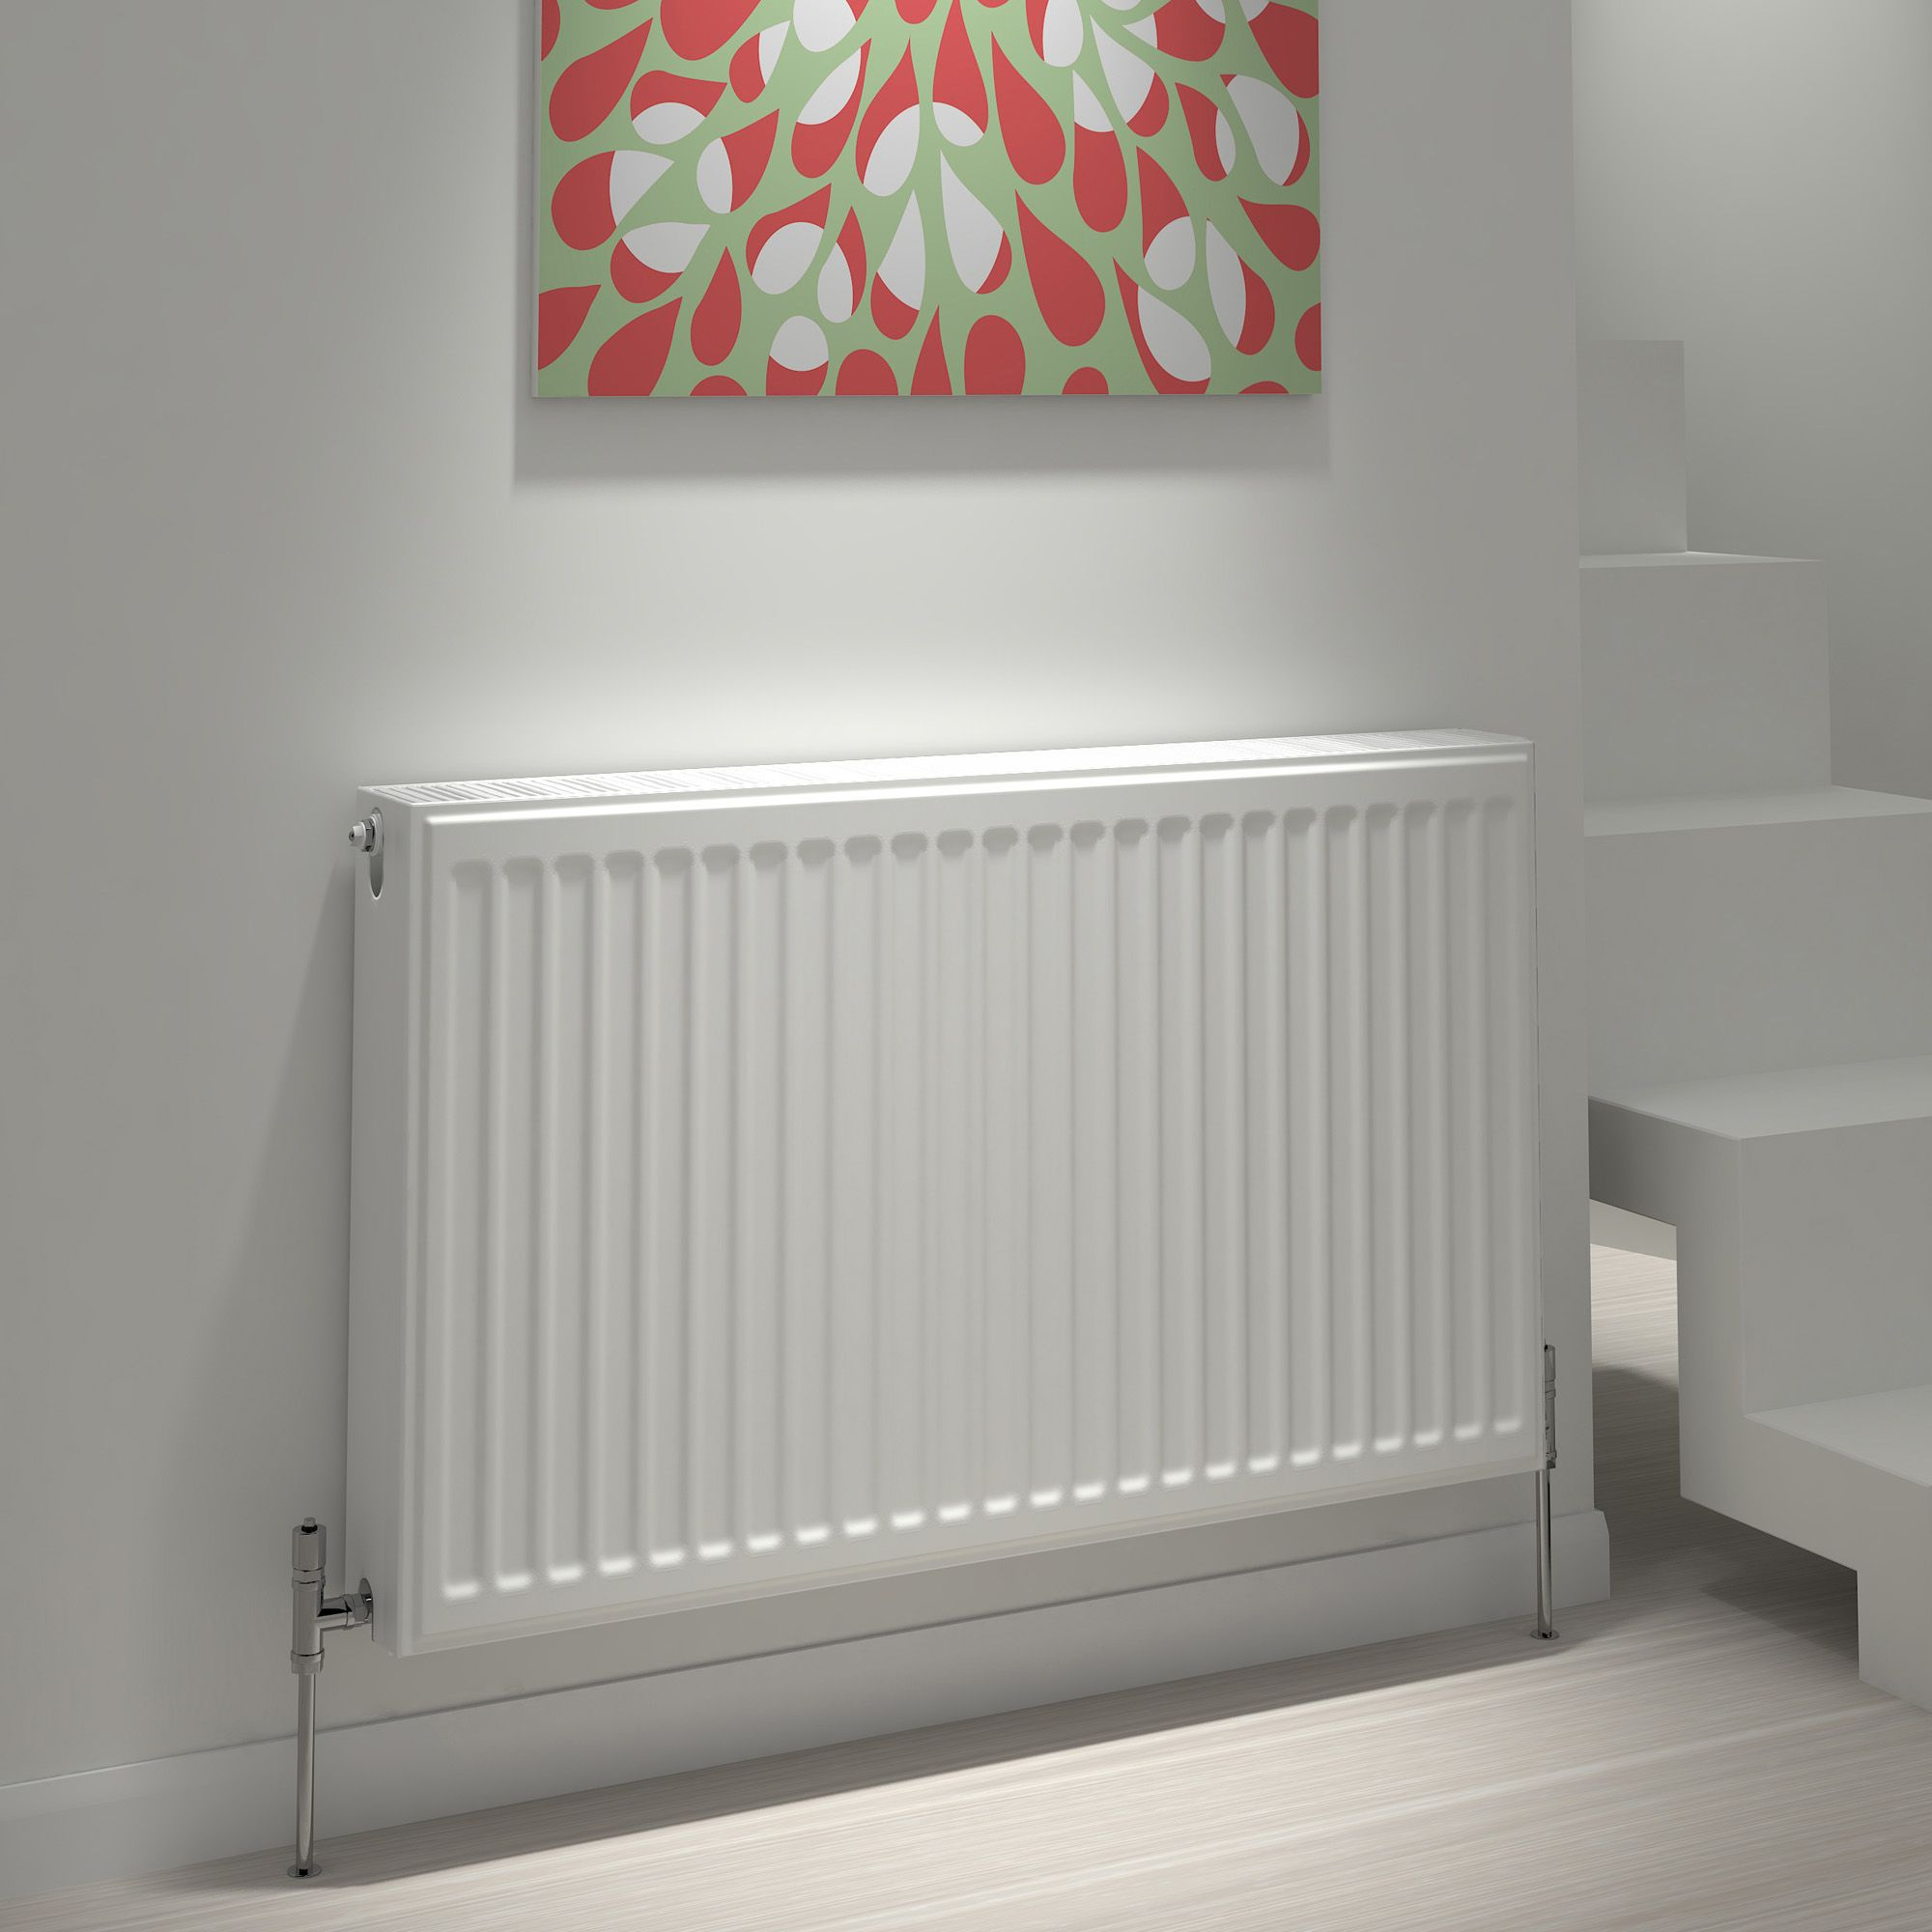 Kudox Type 22 Double Panel Radiator, (H)700mm (W)800mm